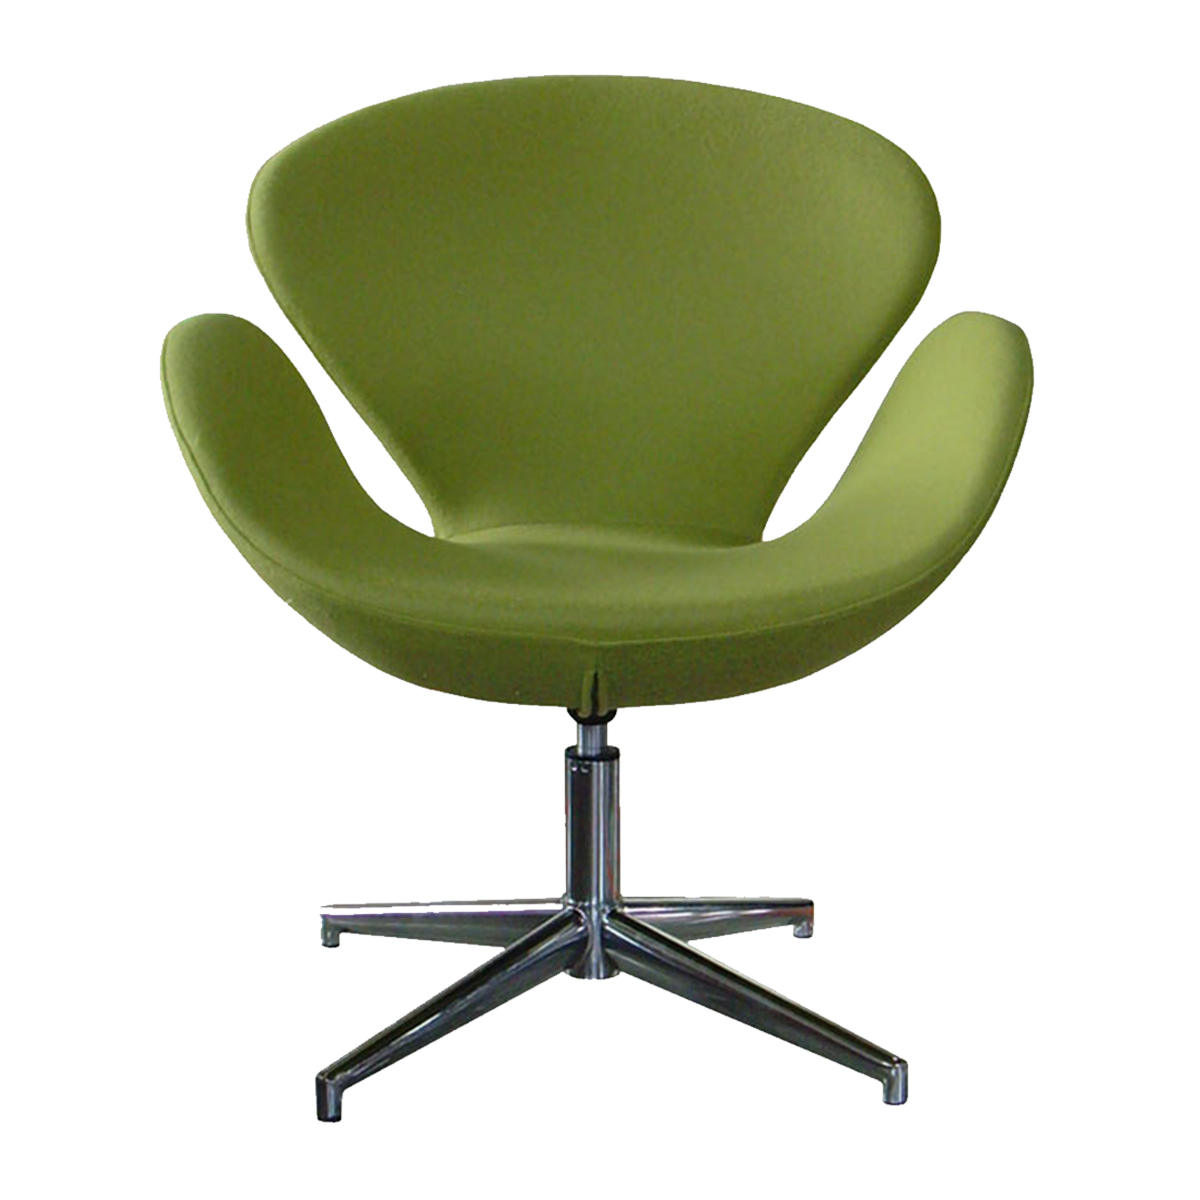 retro arne jacobsen inspired swan chair various colour options ebay. Black Bedroom Furniture Sets. Home Design Ideas